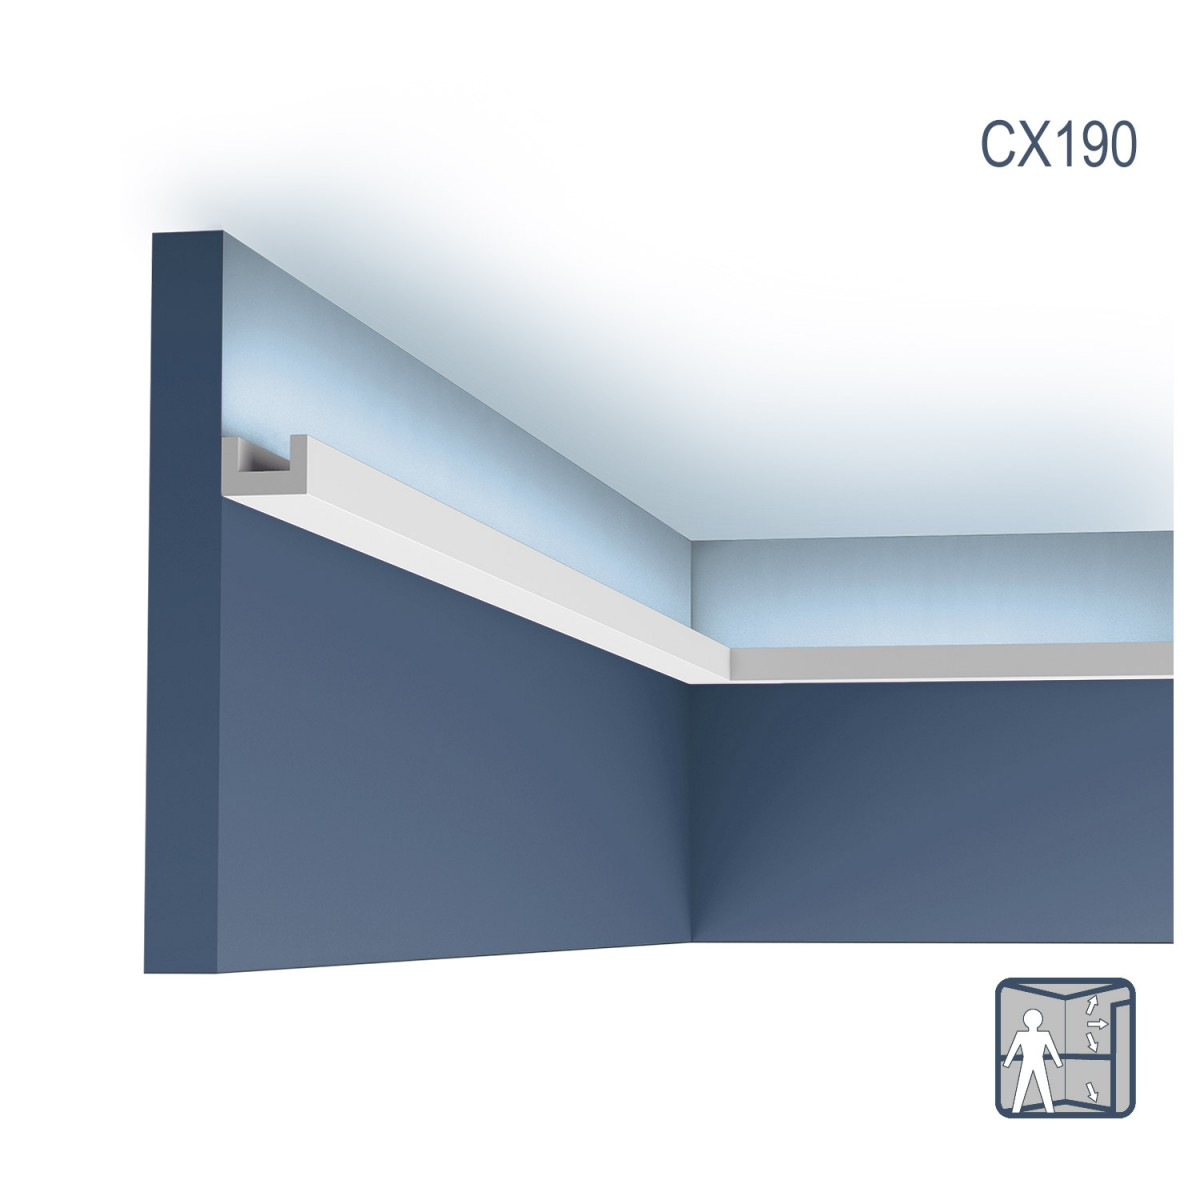 Cornisa Axxent CX190, Dimensiuni: 200 X 2 X 3 cm, Orac Decor